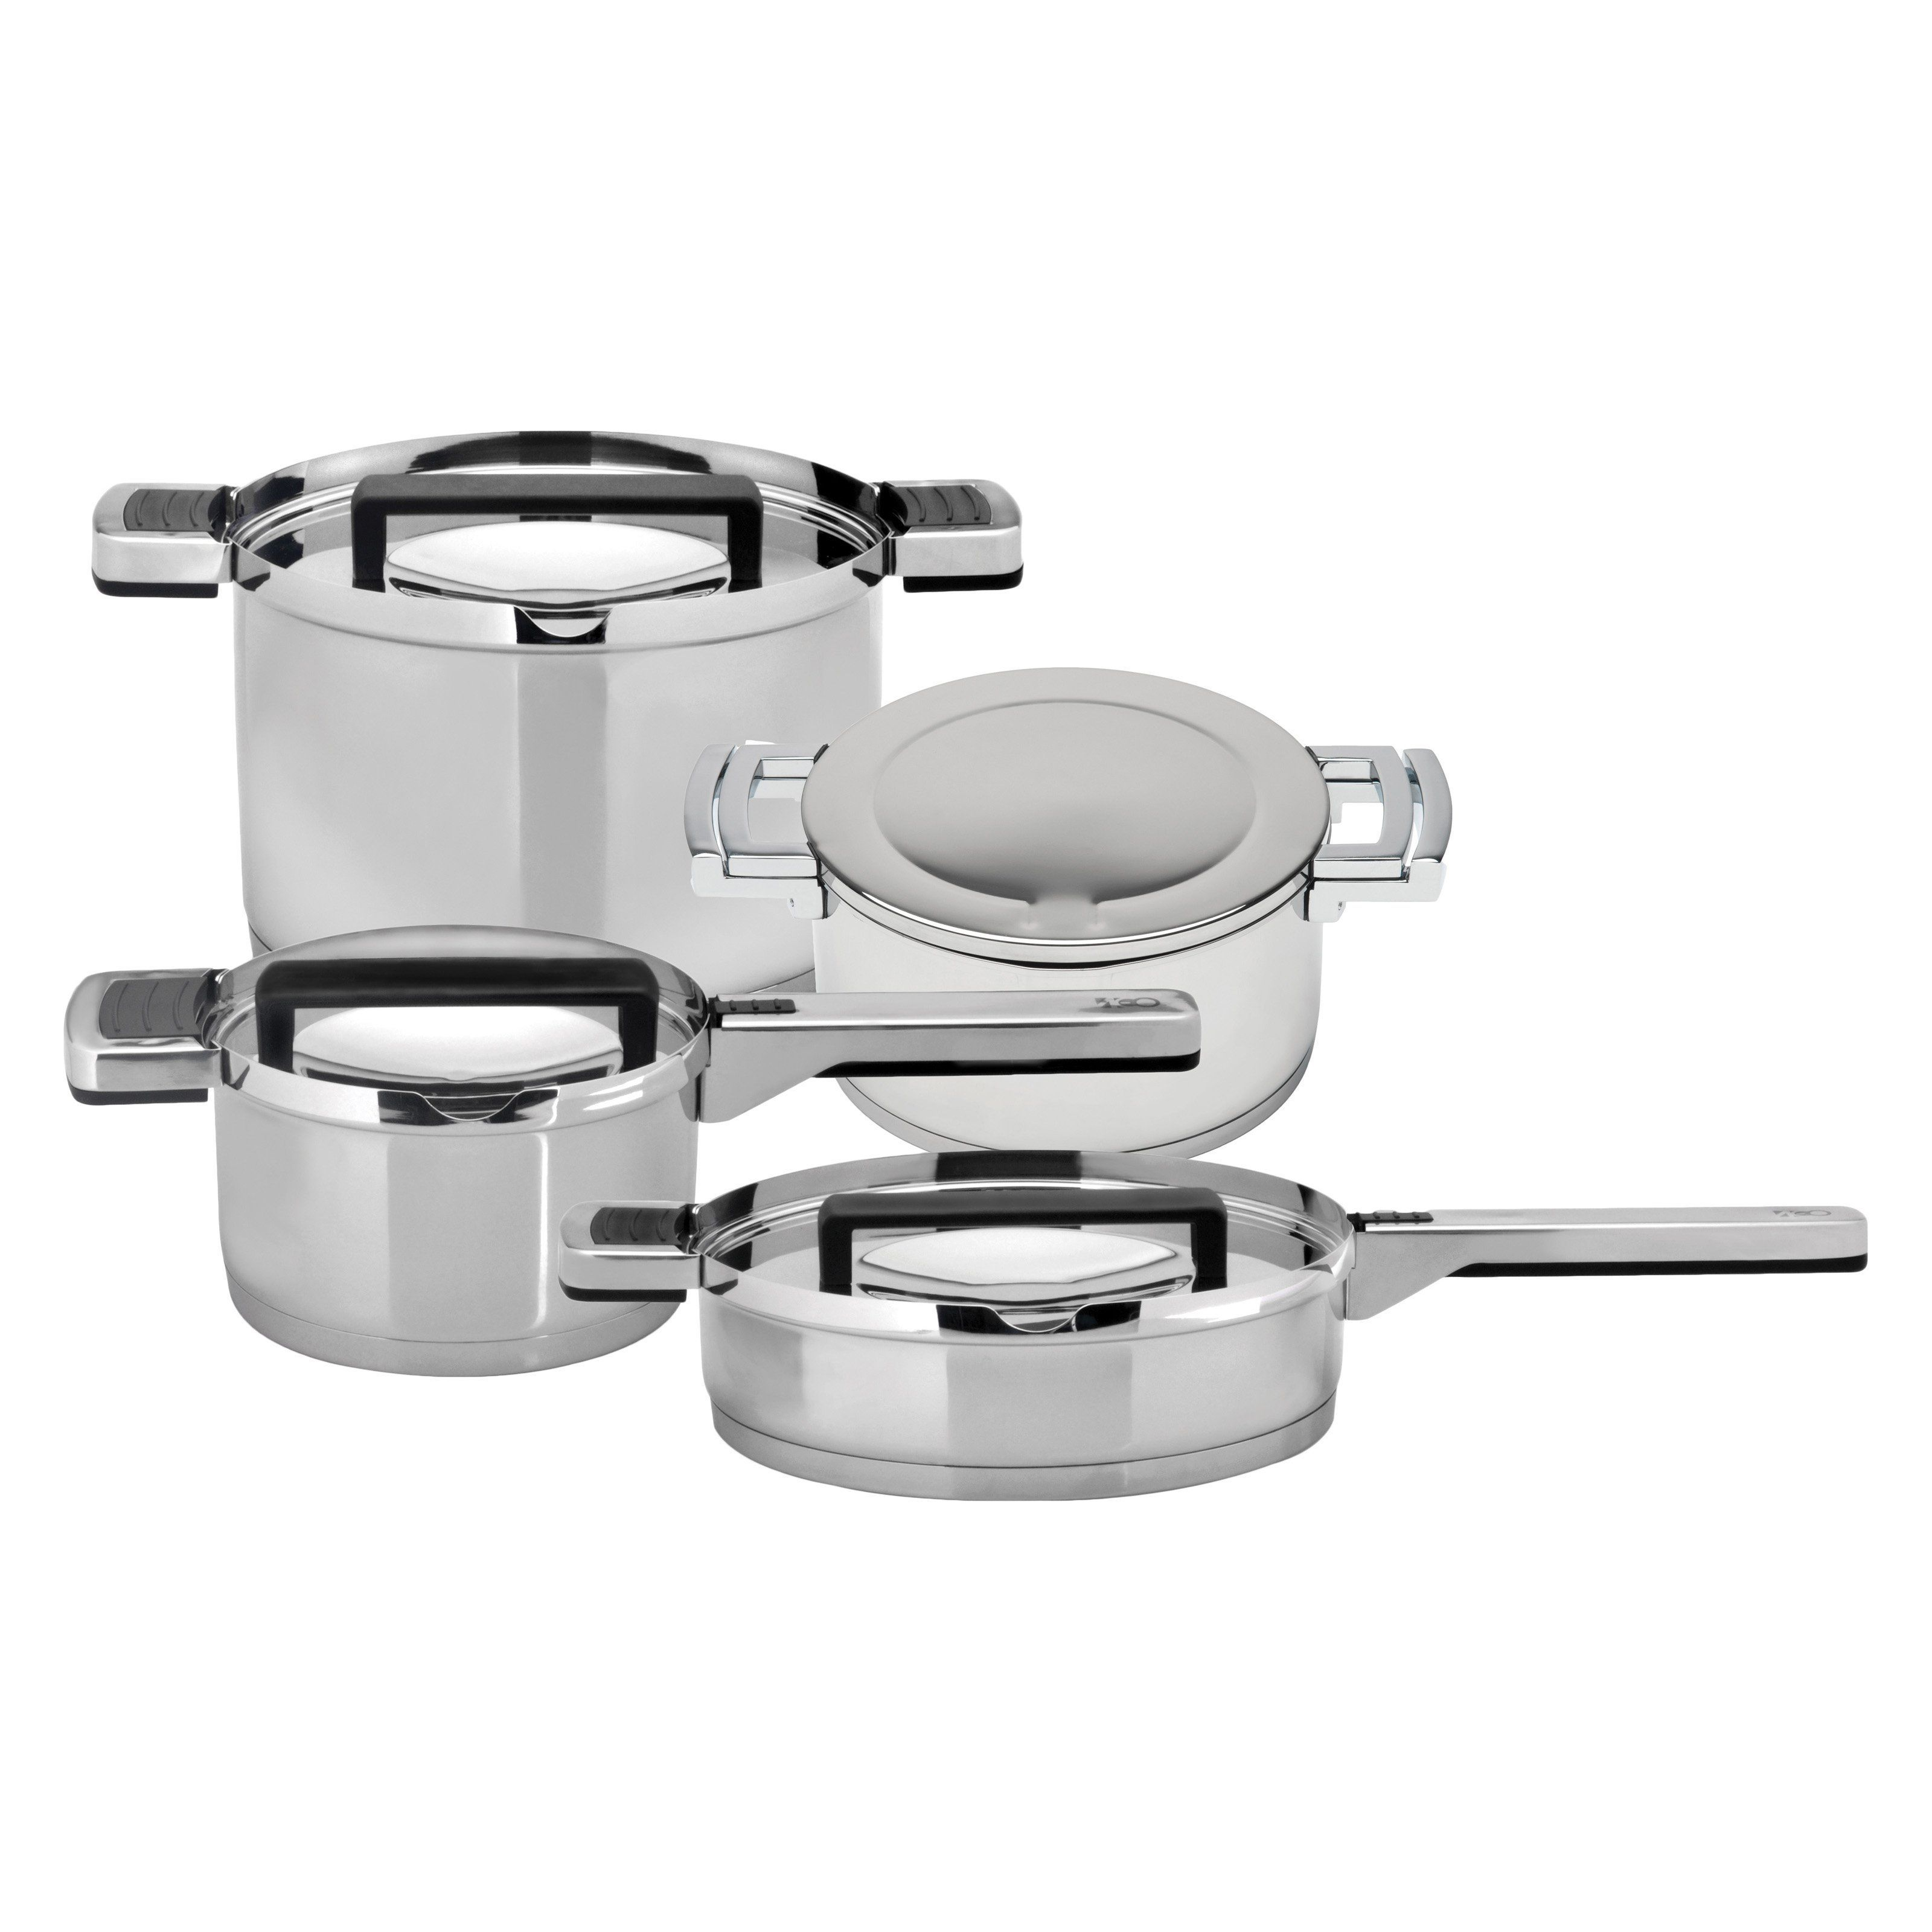 BergHOFF 2211262 Neo Stainless Steel 8 Piece Cookware Set - 2211262